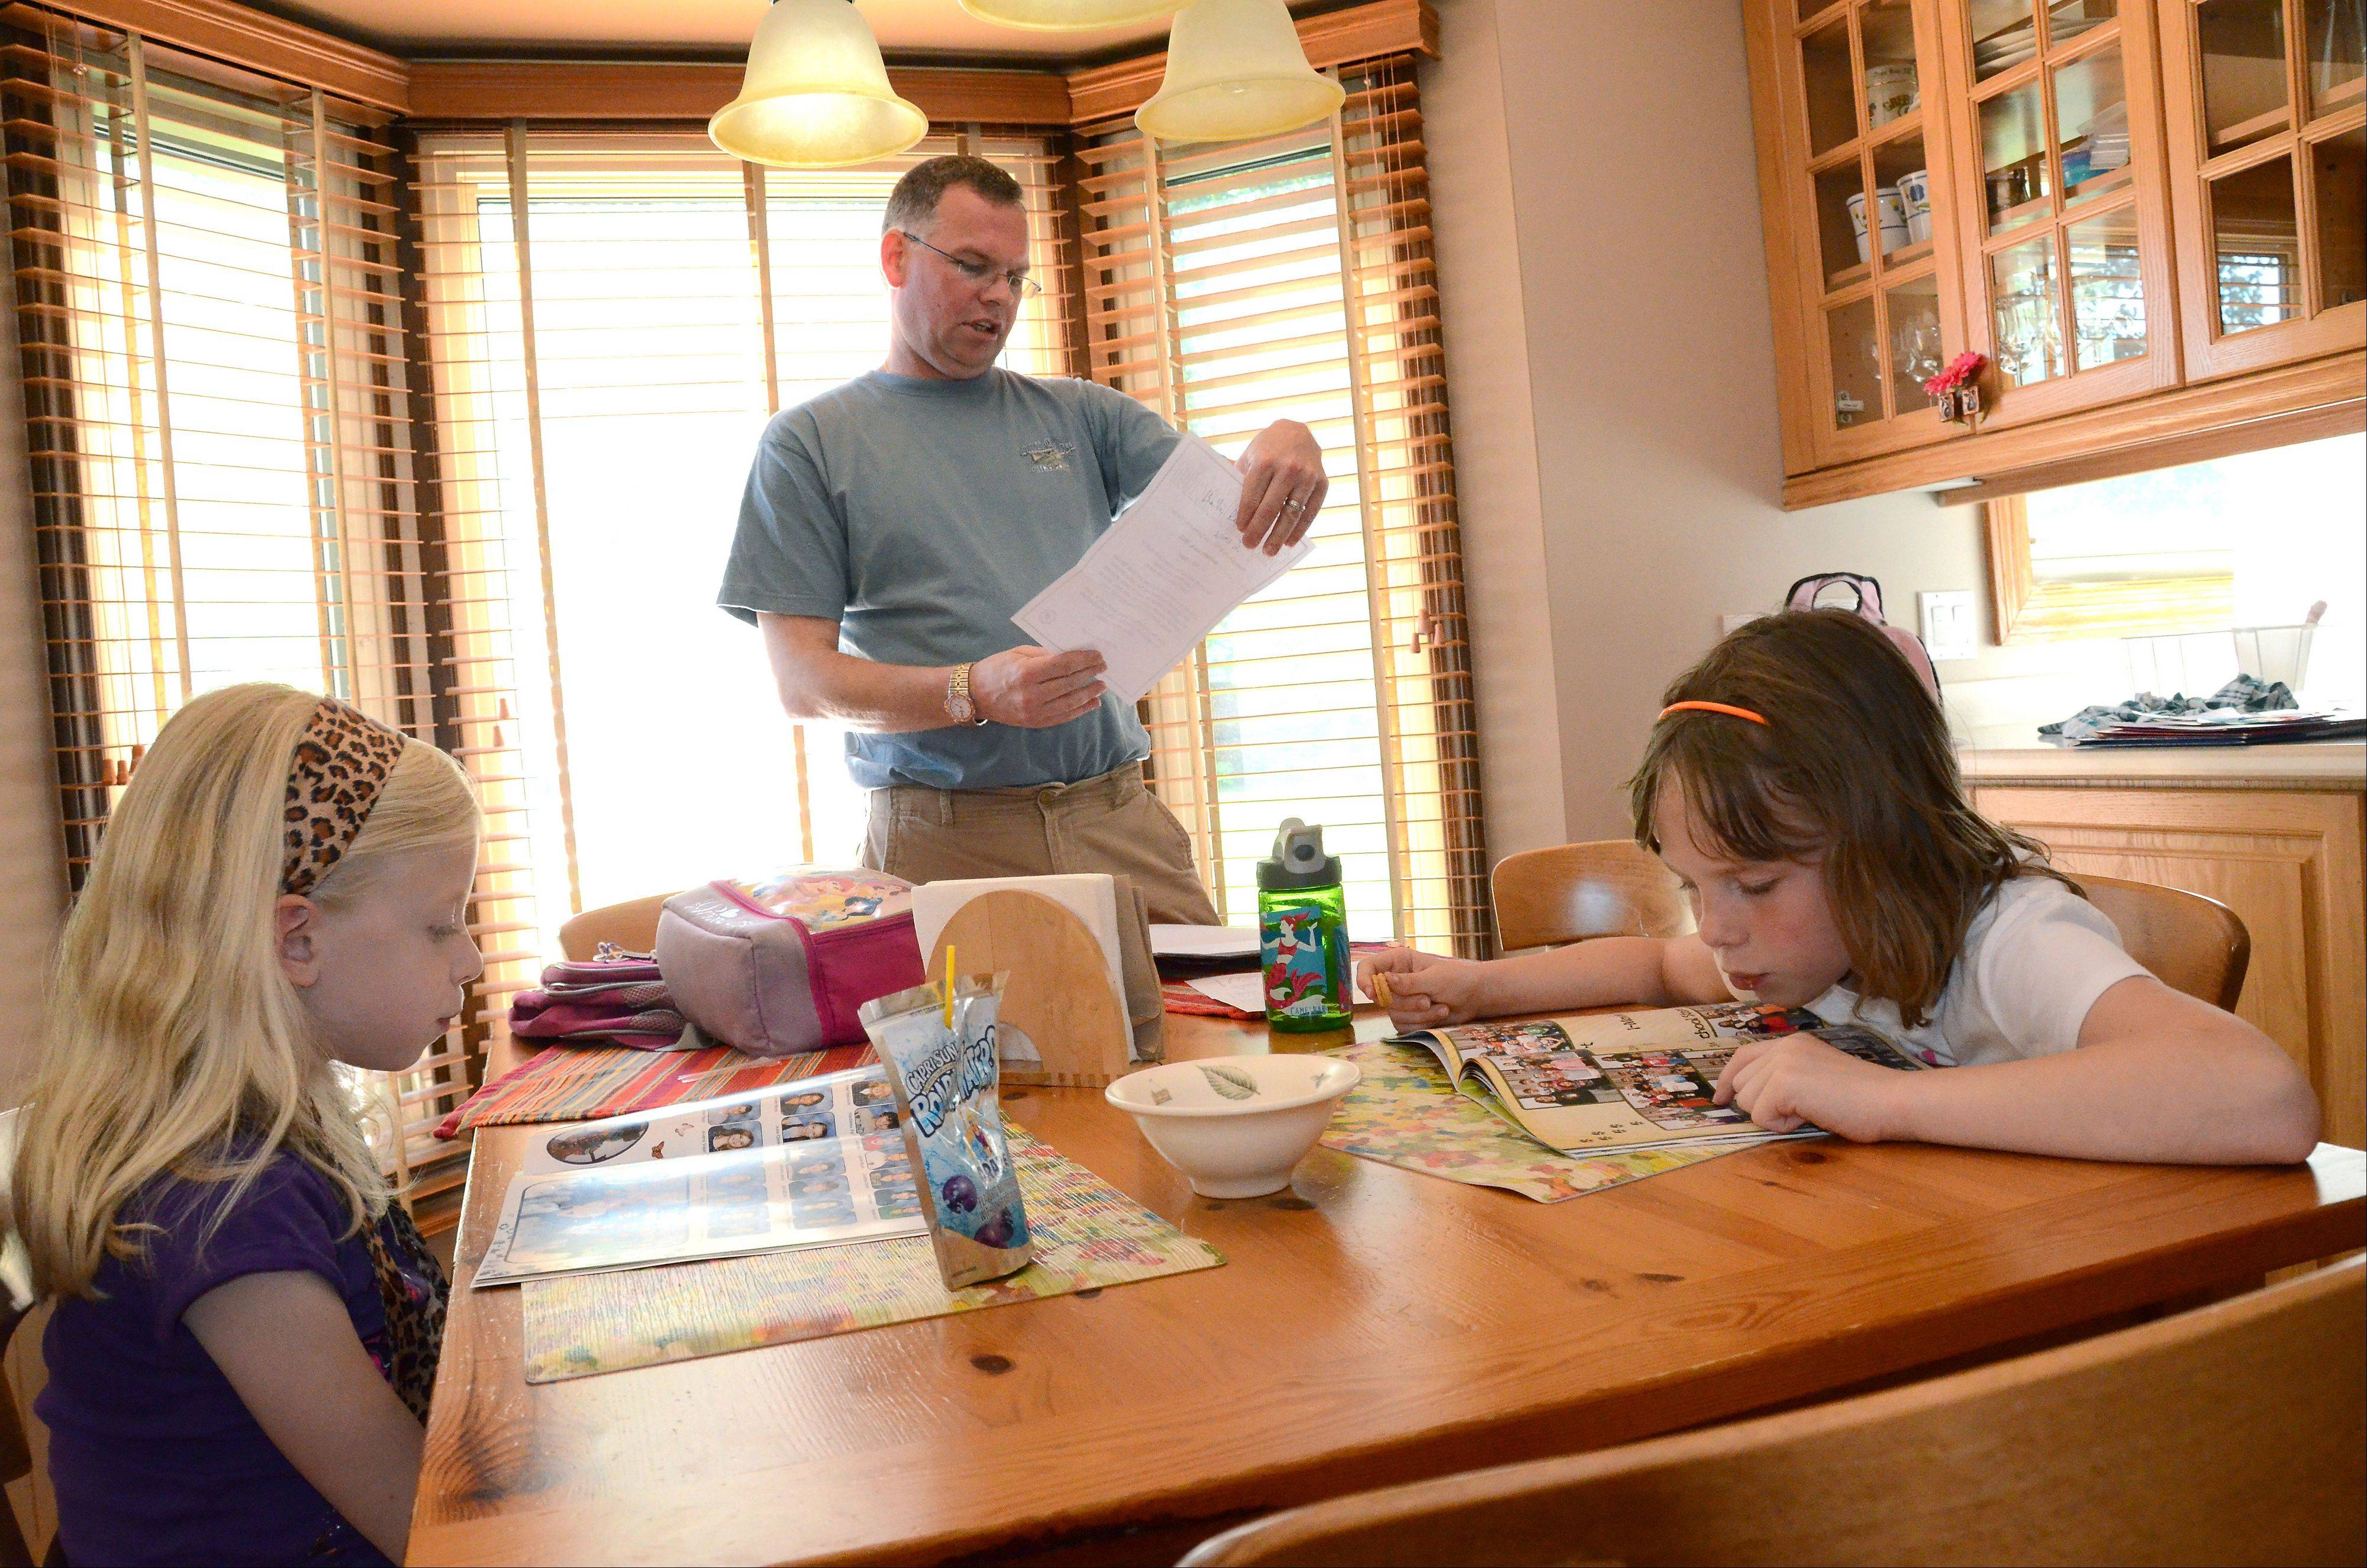 Randy Reid checks homework and such in the backpacks of his daughters Maddie, 6, left, and Bella, 8, after they get home from school.